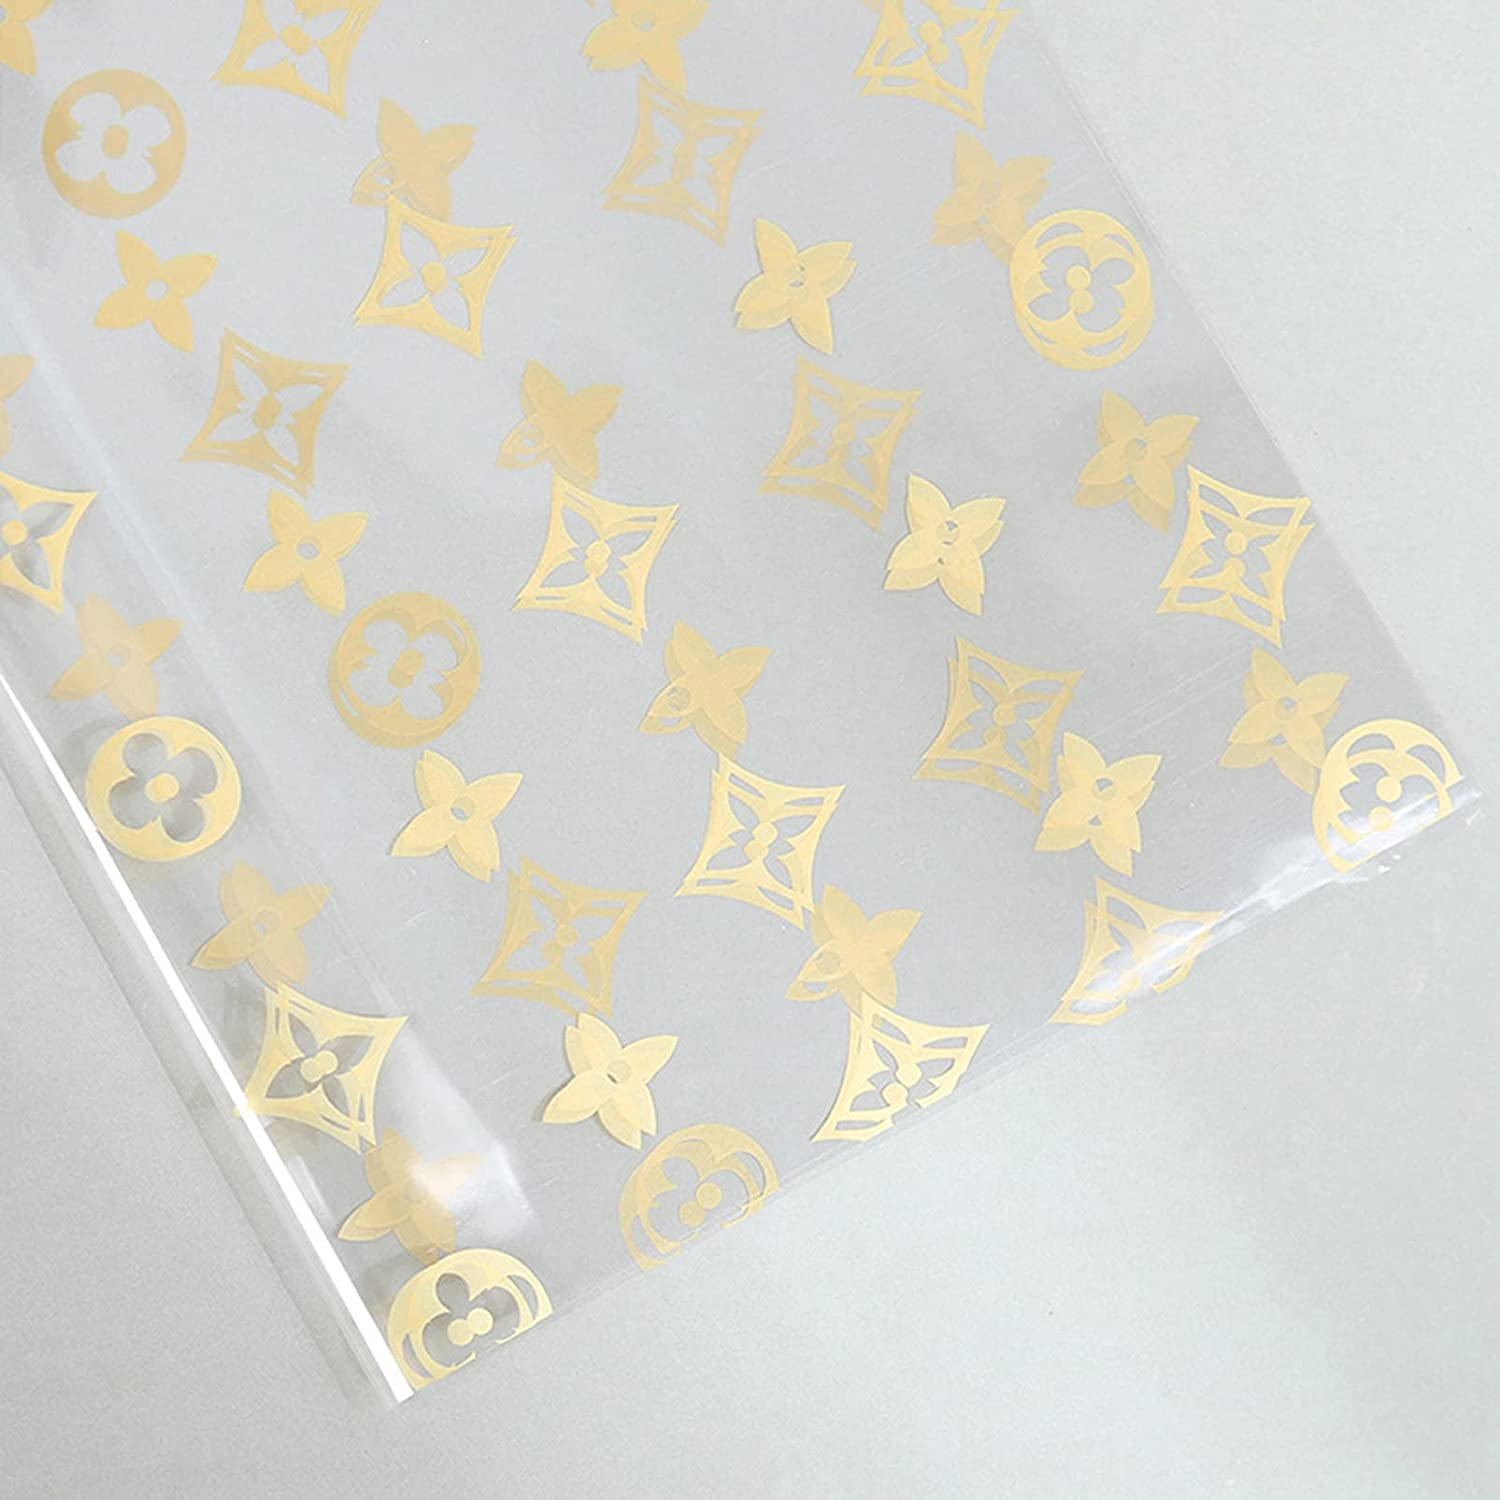 Printing Flower Oakland Mall Transparent Golden Cellophane All stores are sold Waterproof